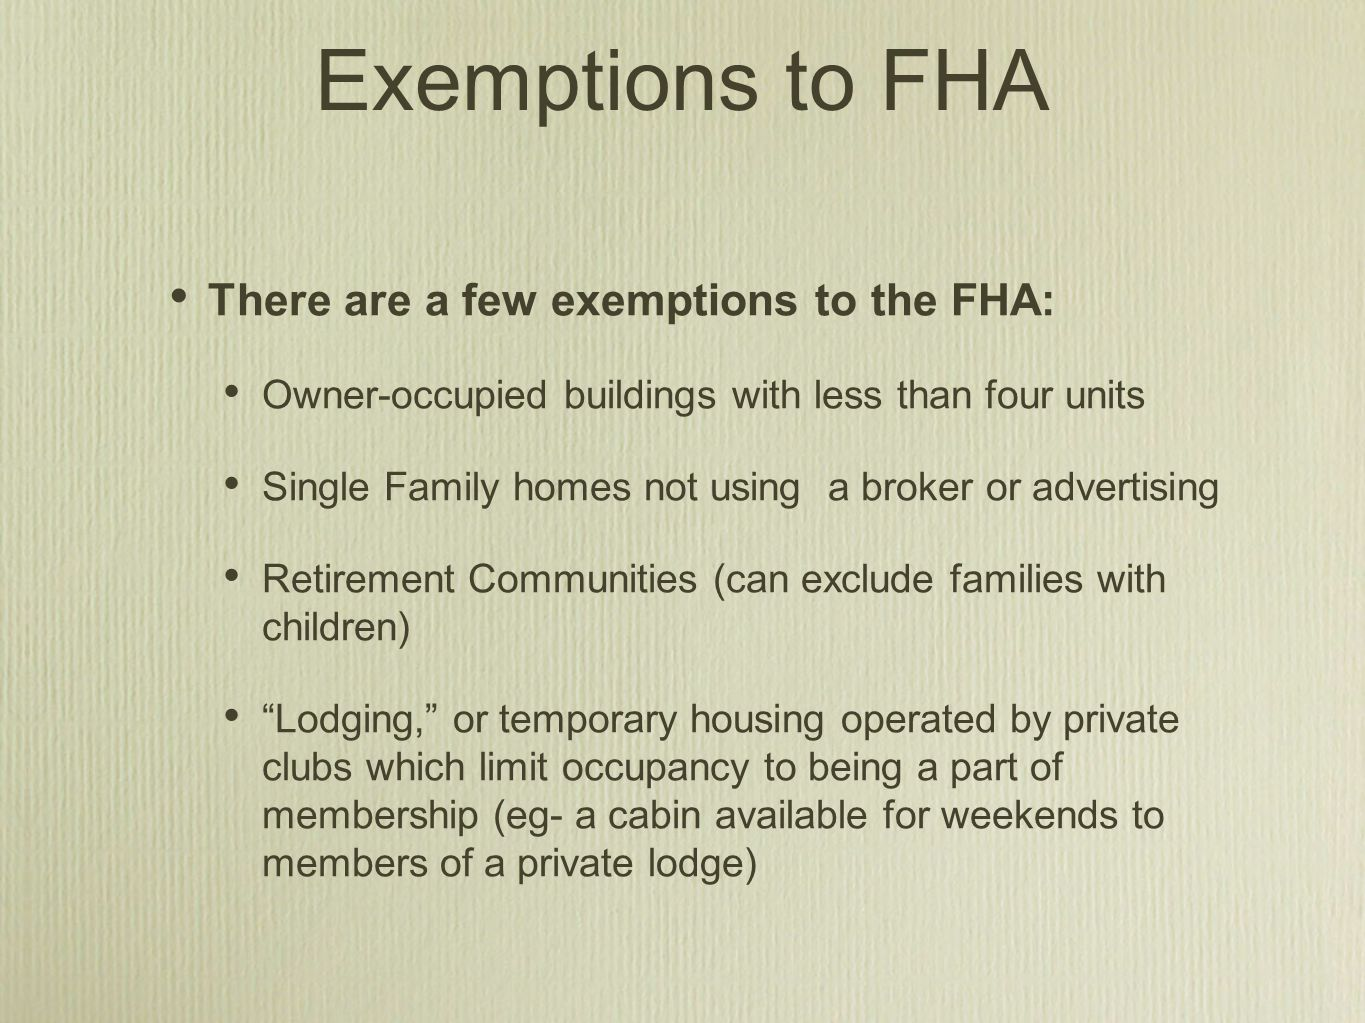 Exemptions to FHA There are a few exemptions to the FHA: Owner-occupied buildings with less than four units Single Family homes not using a broker or advertising Retirement Communities (can exclude families with children) Lodging, or temporary housing operated by private clubs which limit occupancy to being a part of membership (eg- a cabin available for weekends to members of a private lodge)